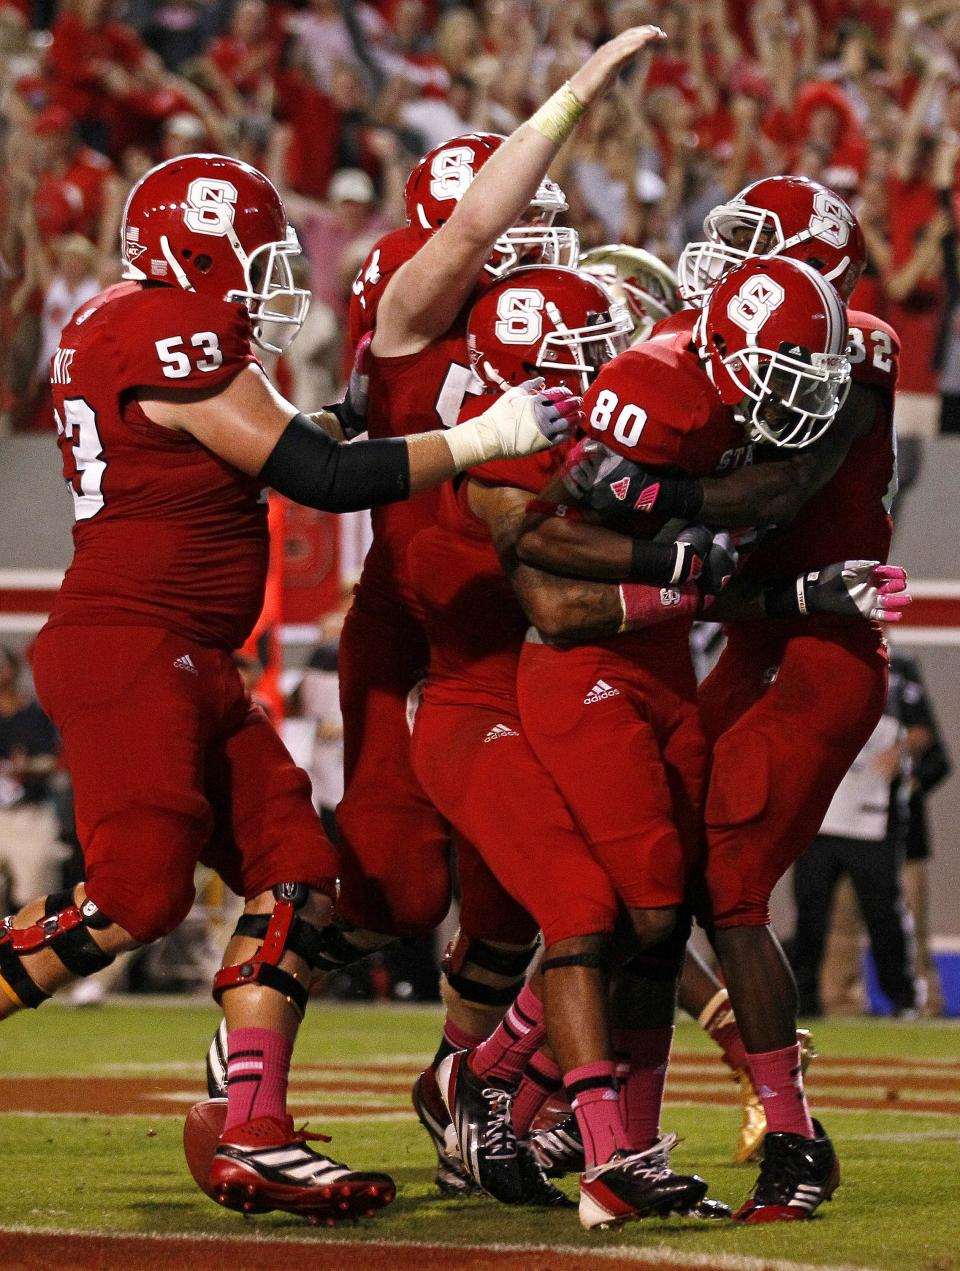 North Carolina State's Bryan Underwood (80) is congratulated by teammates after Underwood's touchdown to tie the game late in the second half of an NCAA college football game against Florida State in Raleigh, N.C., Saturday, Oct. 6, 2012. North Carolina State won 17-16. (AP Photo/Gerry Broome)